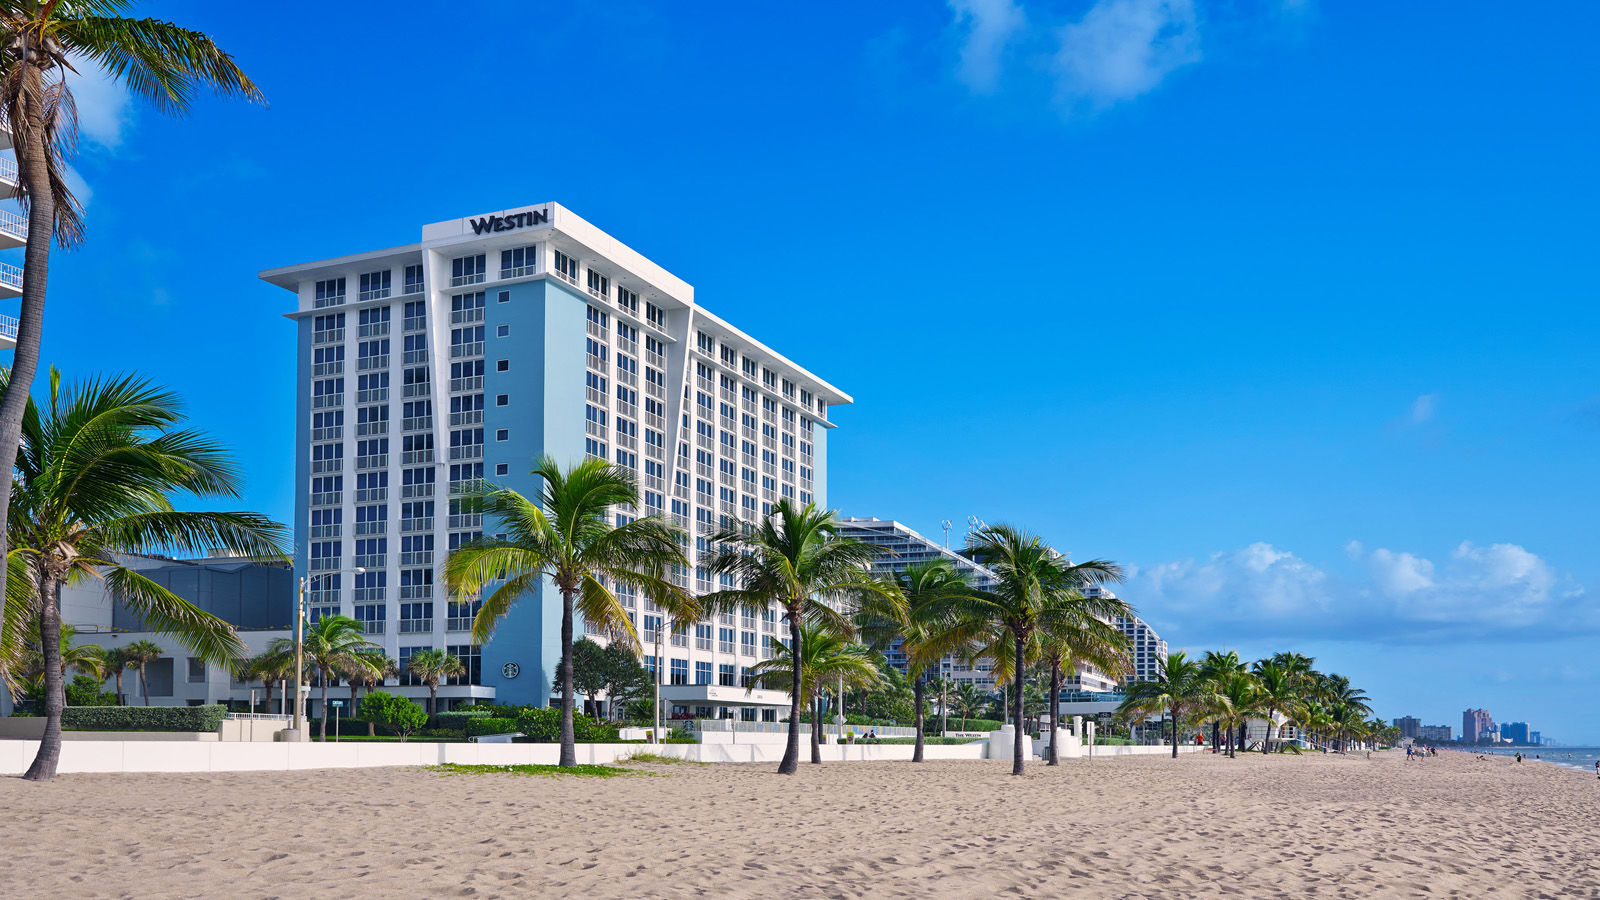 LGBTQ Friendly Hotels in Ft Lauderdale